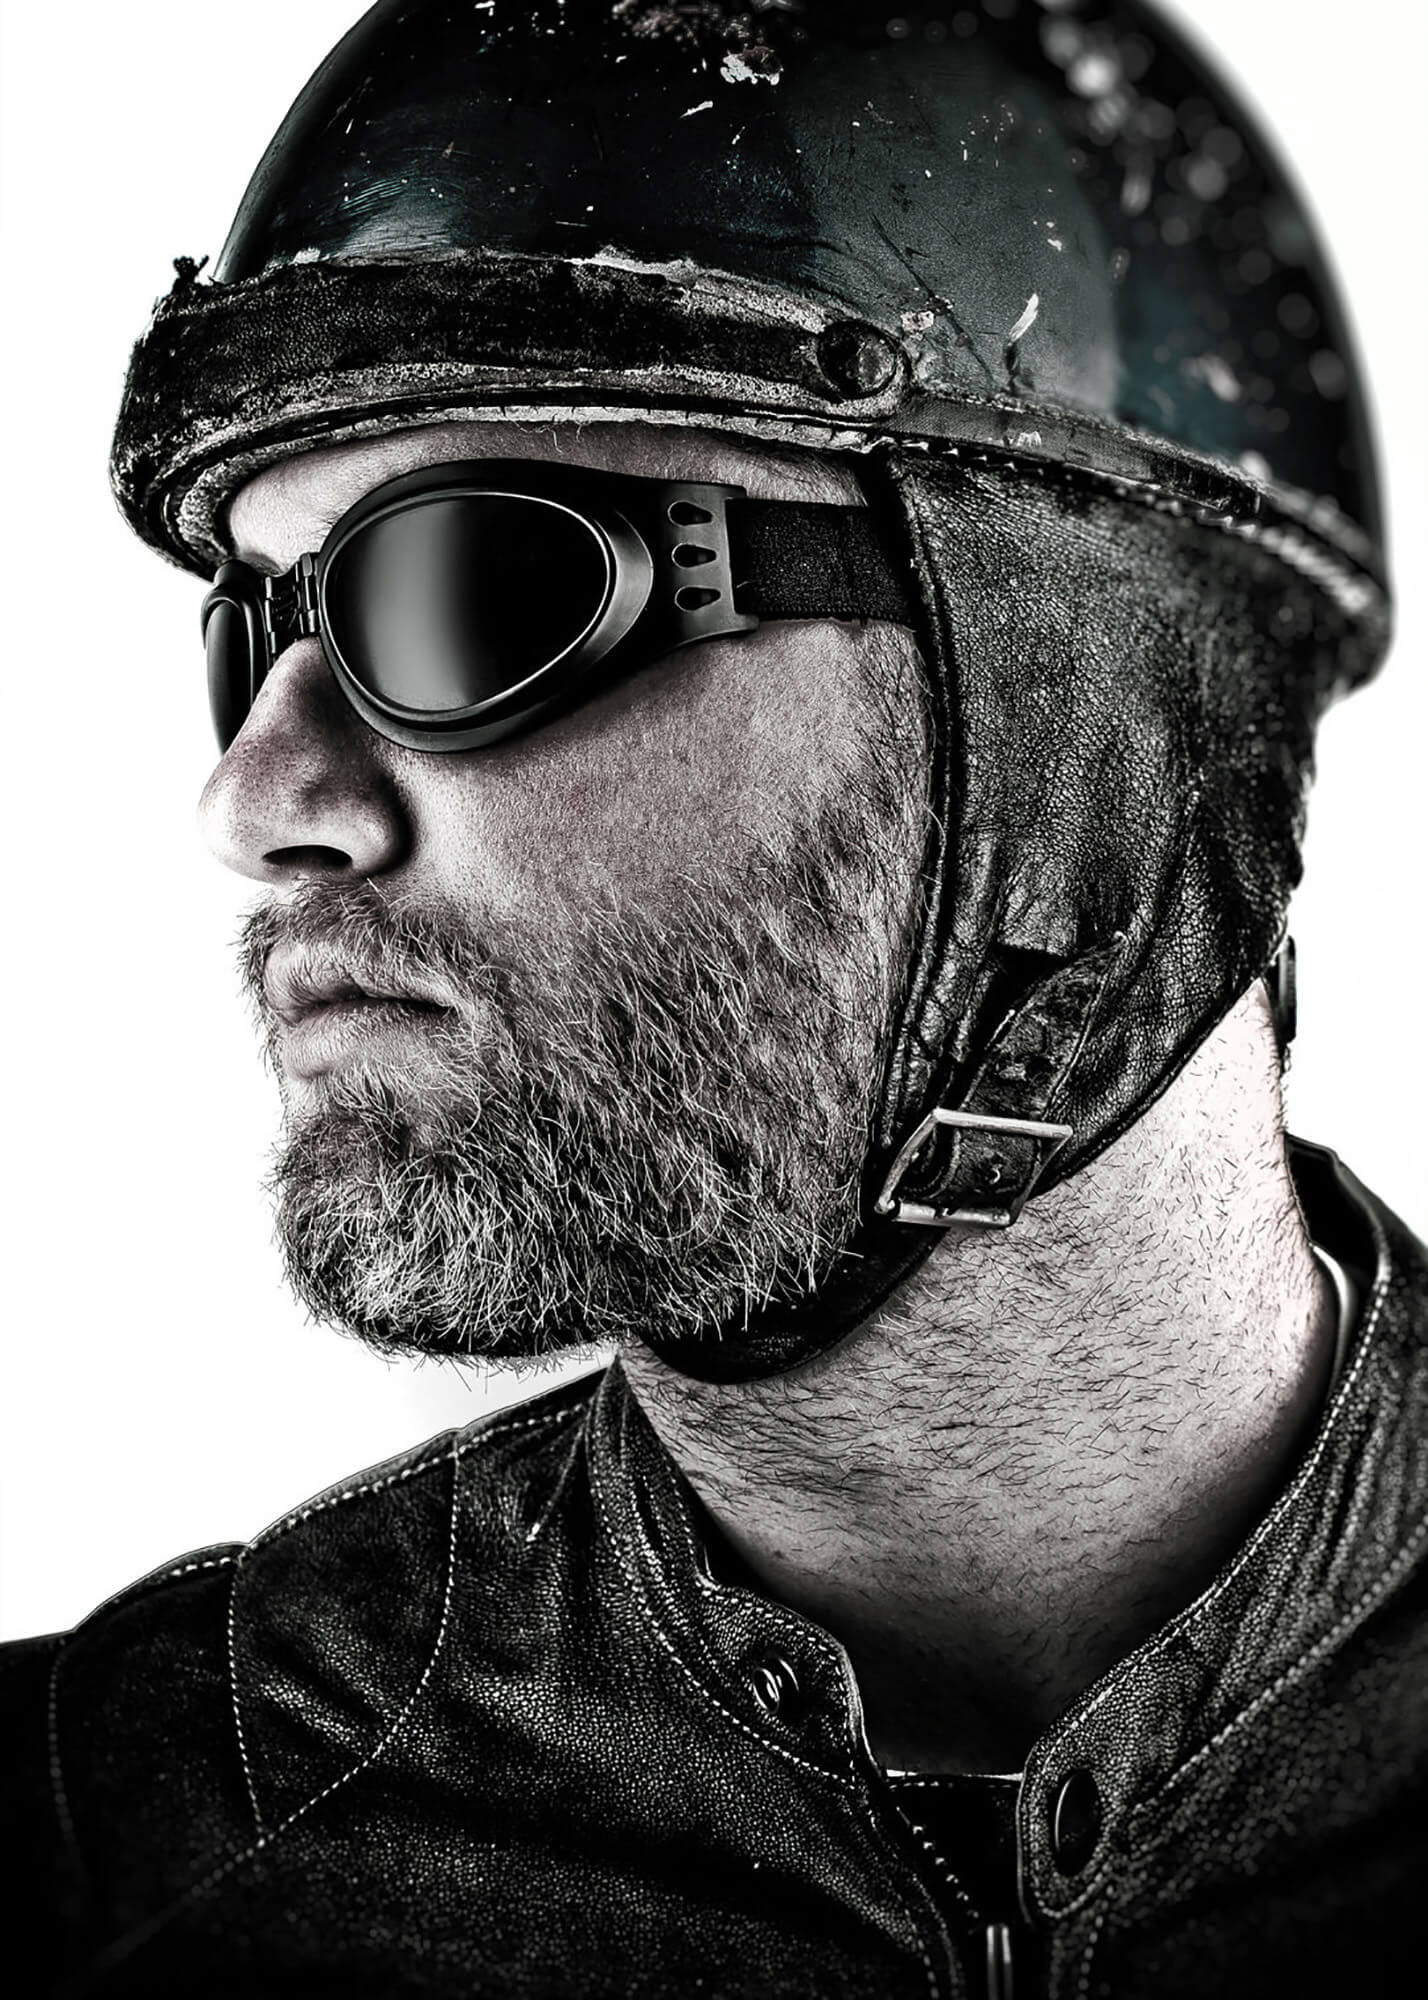 Studio portrait of man in motorcycle helmet